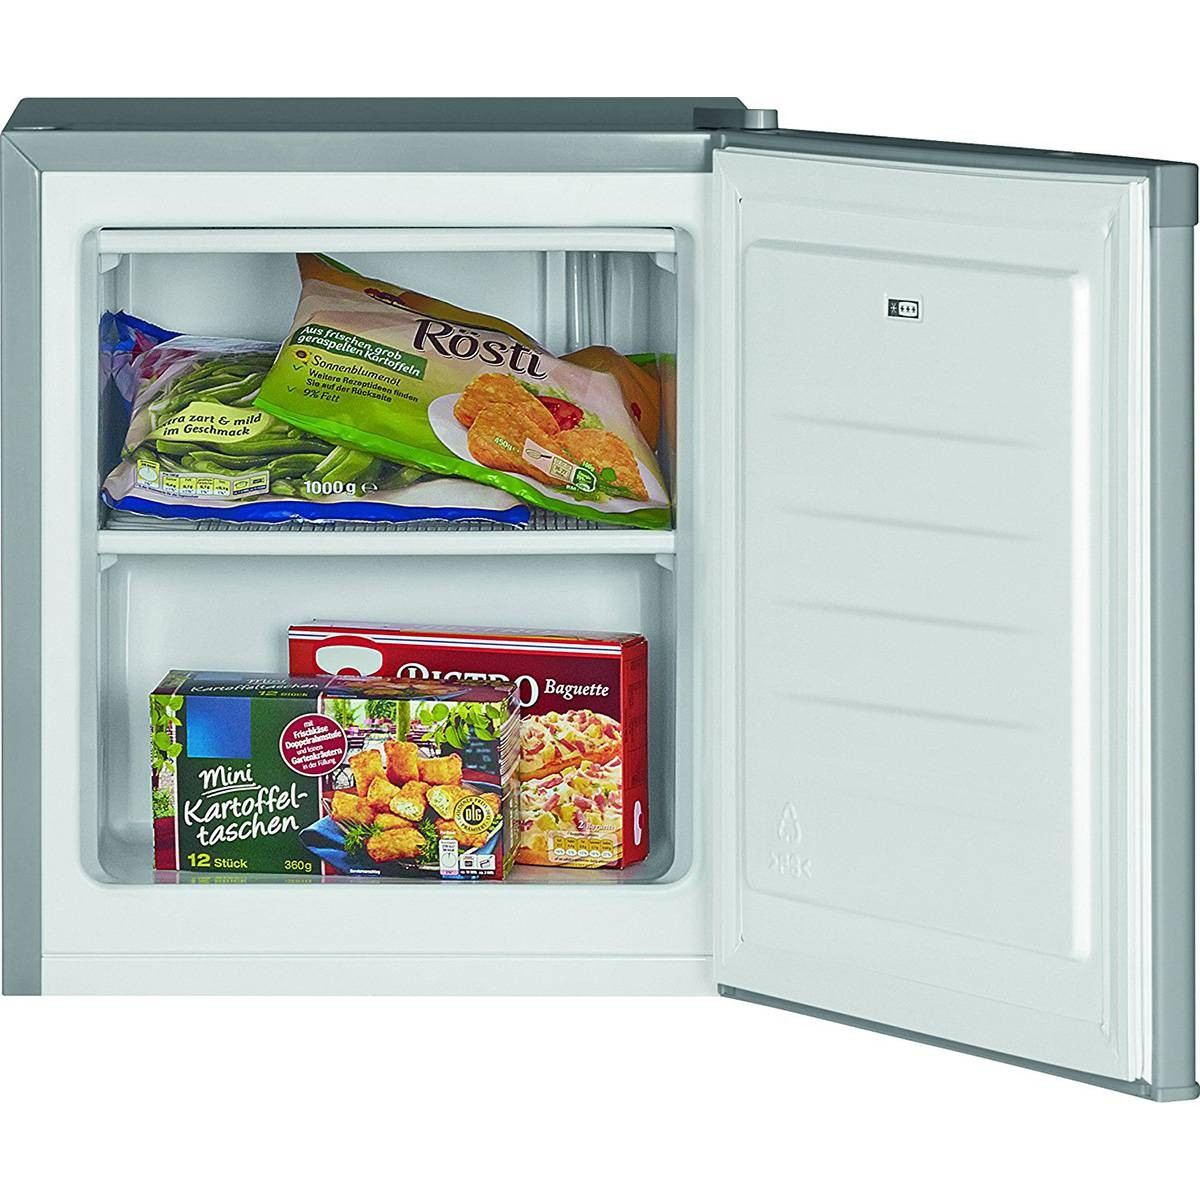 Bomann Hard GB 388 Freezer Vertical Independent Petty Drawers Capacity 30 Liters Gate Reversible Silver A + +